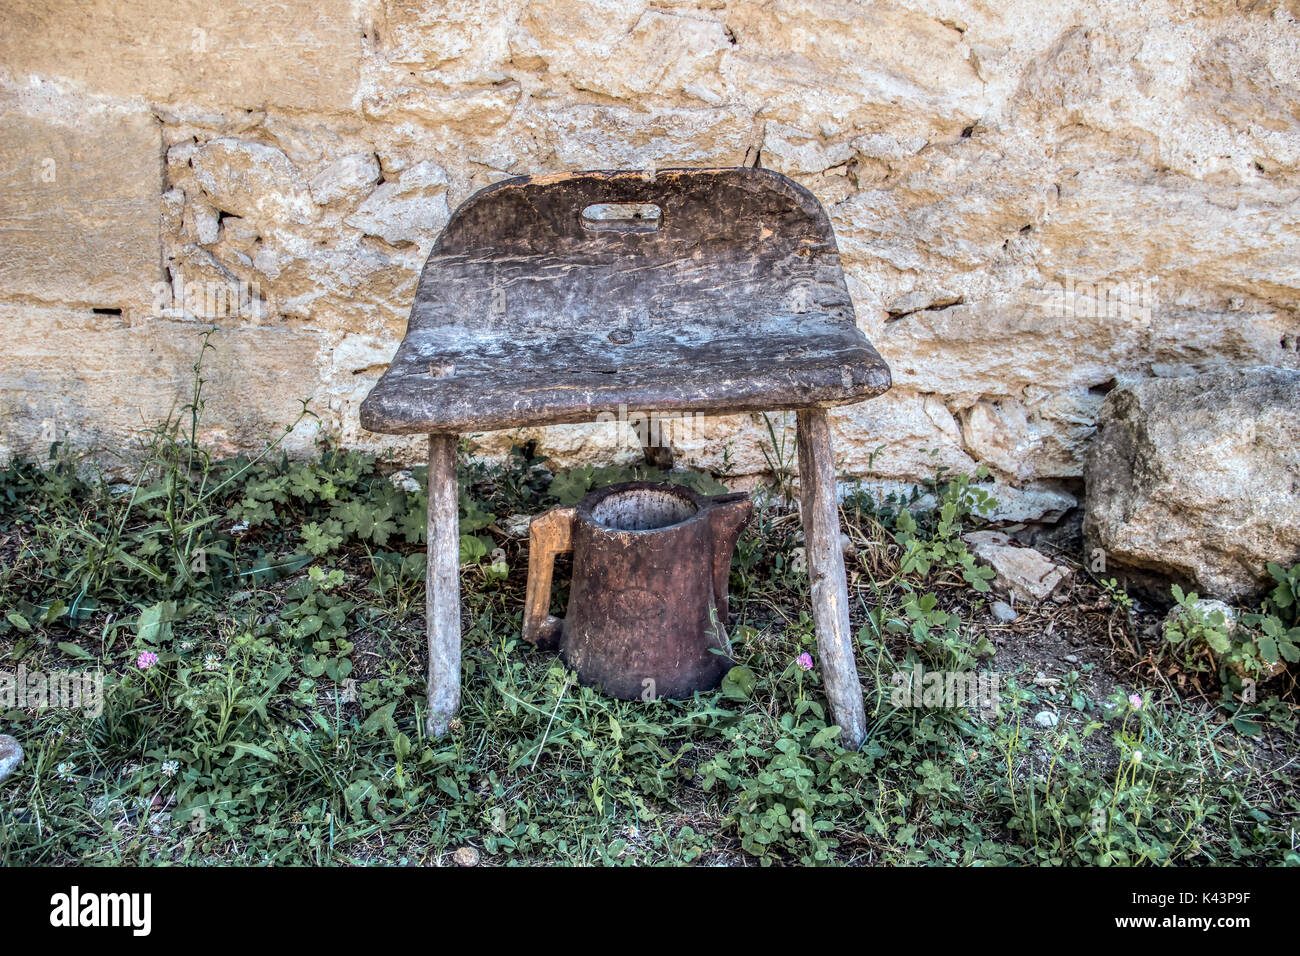 Countryside, East Serbia - Antique three legs stool and wooden wine jug in front of old vinery stone wall Stock Photo